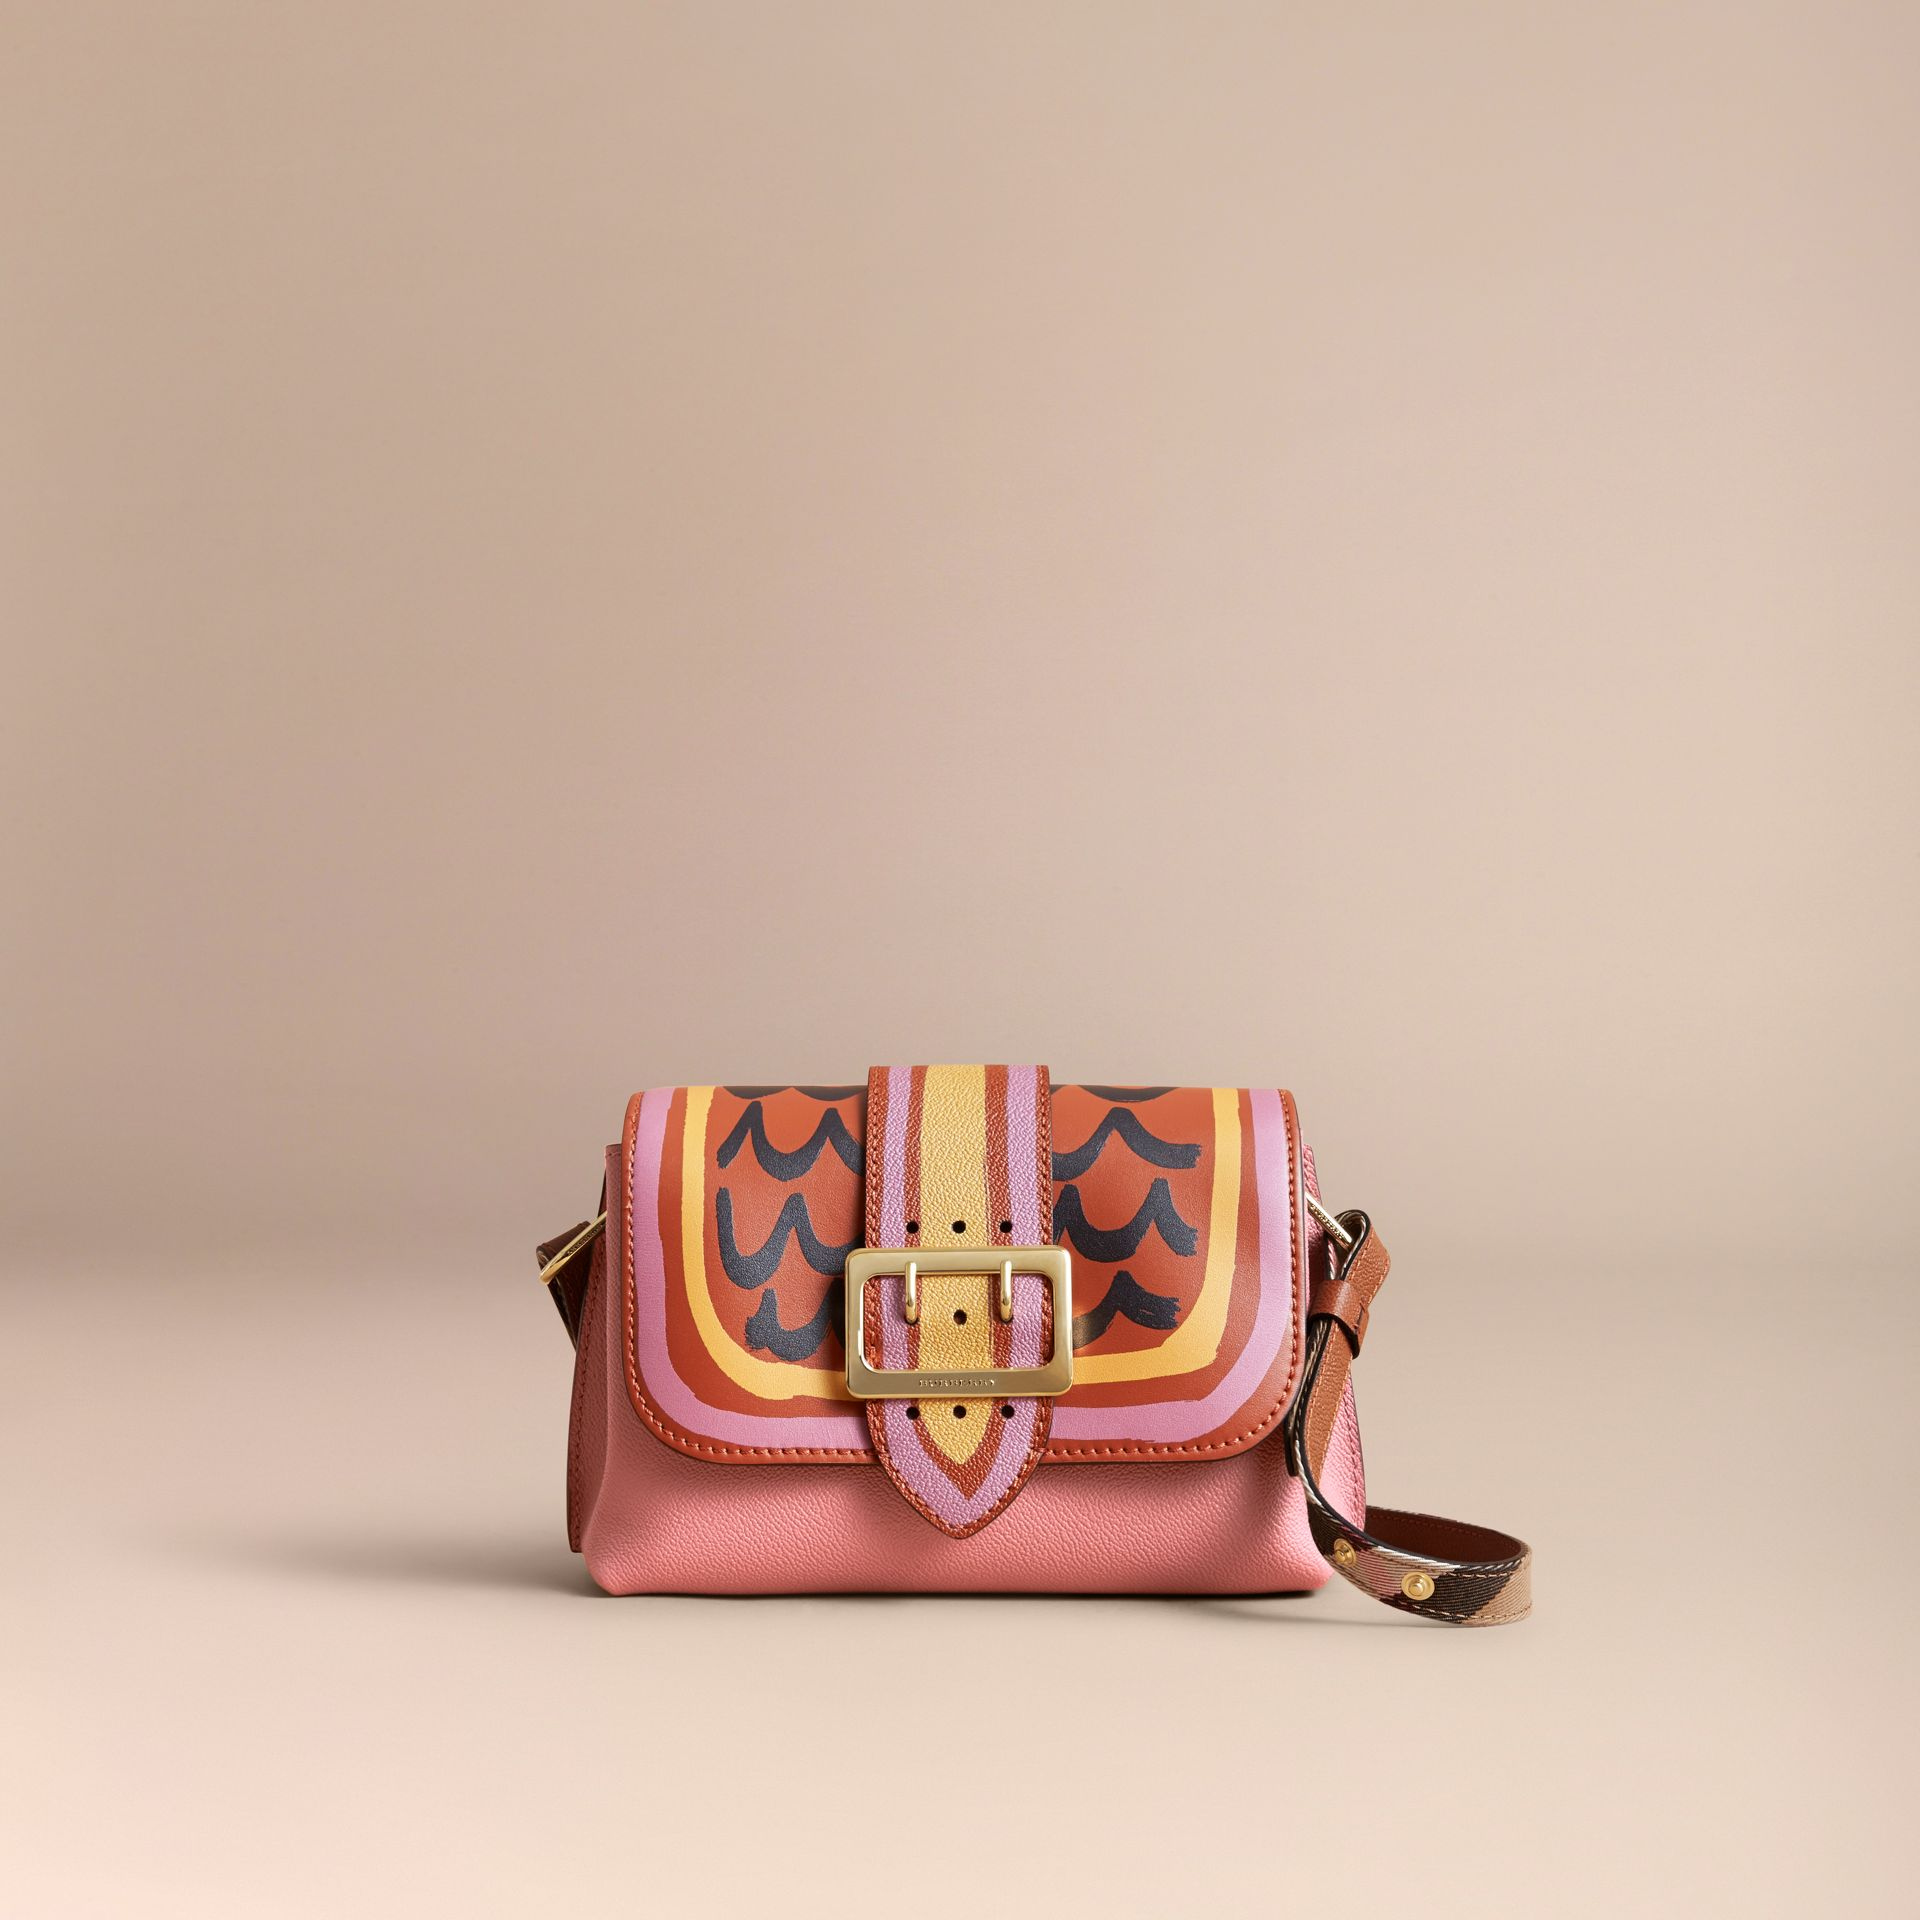 The Buckle Crossbody Bag in Trompe L'oeil Leather in Dusty Pink/bright Toffee - gallery image 7